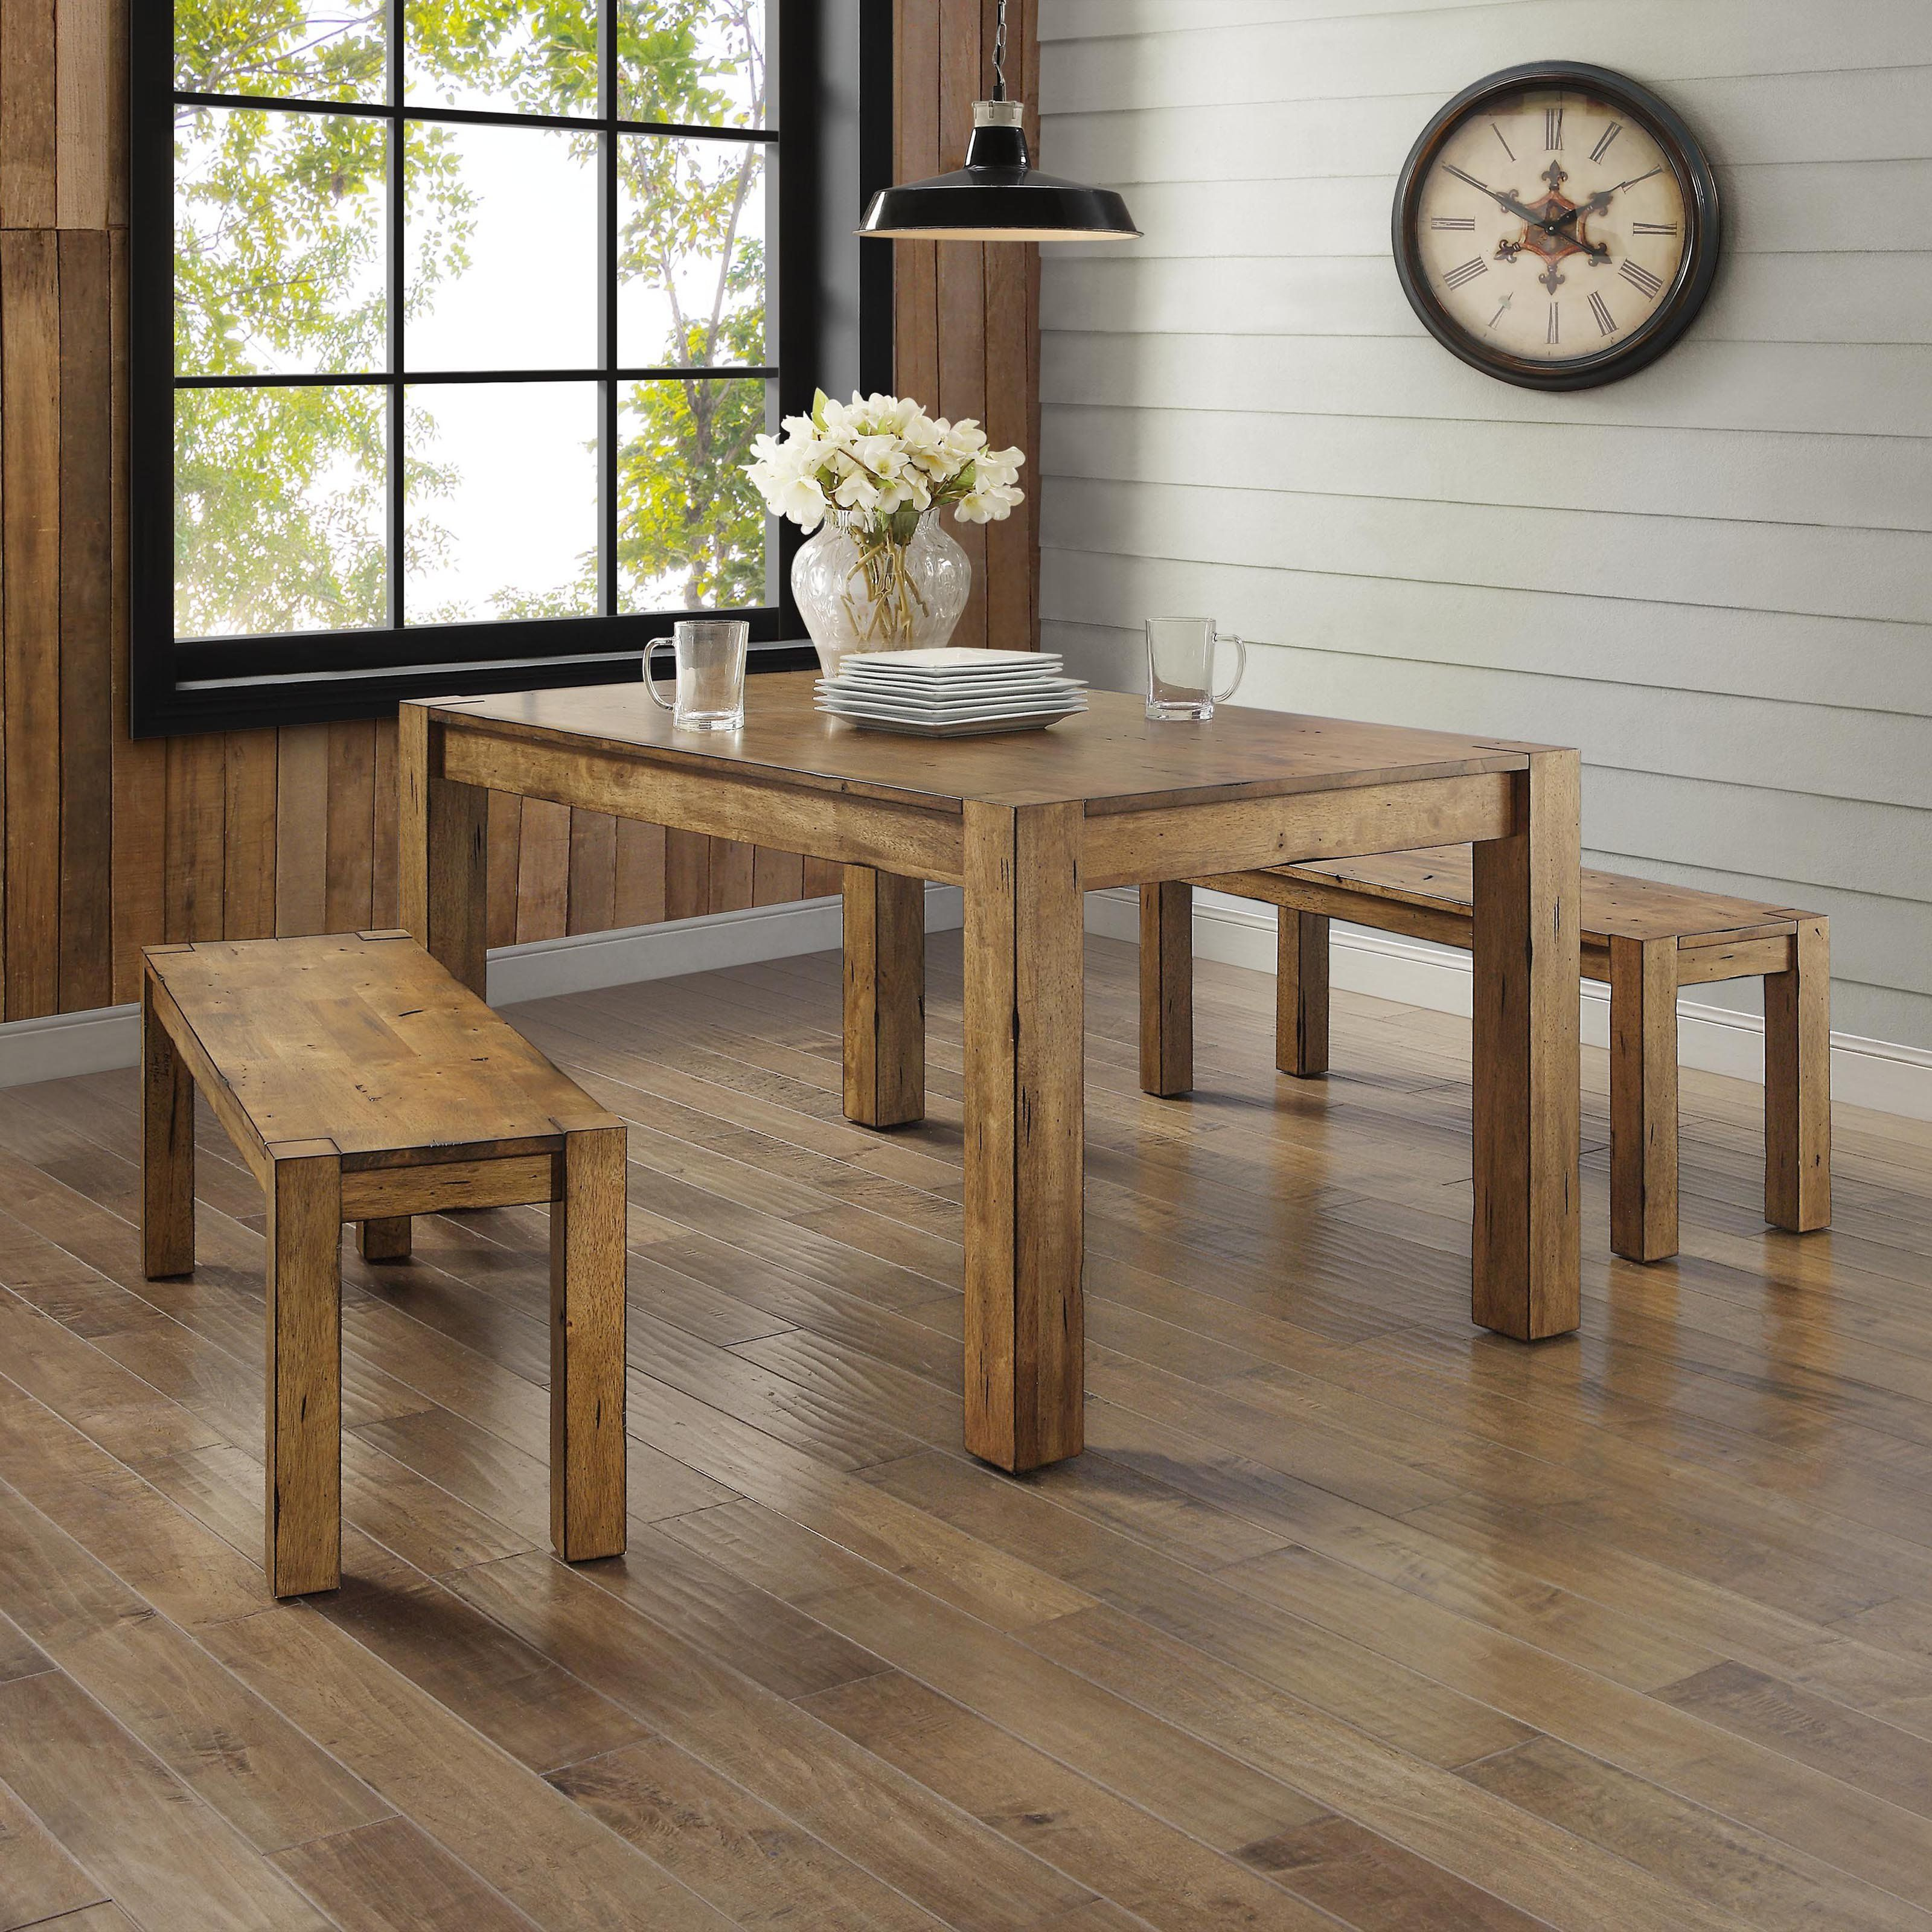 Better Homes & Gardens Bryant Dining Table from